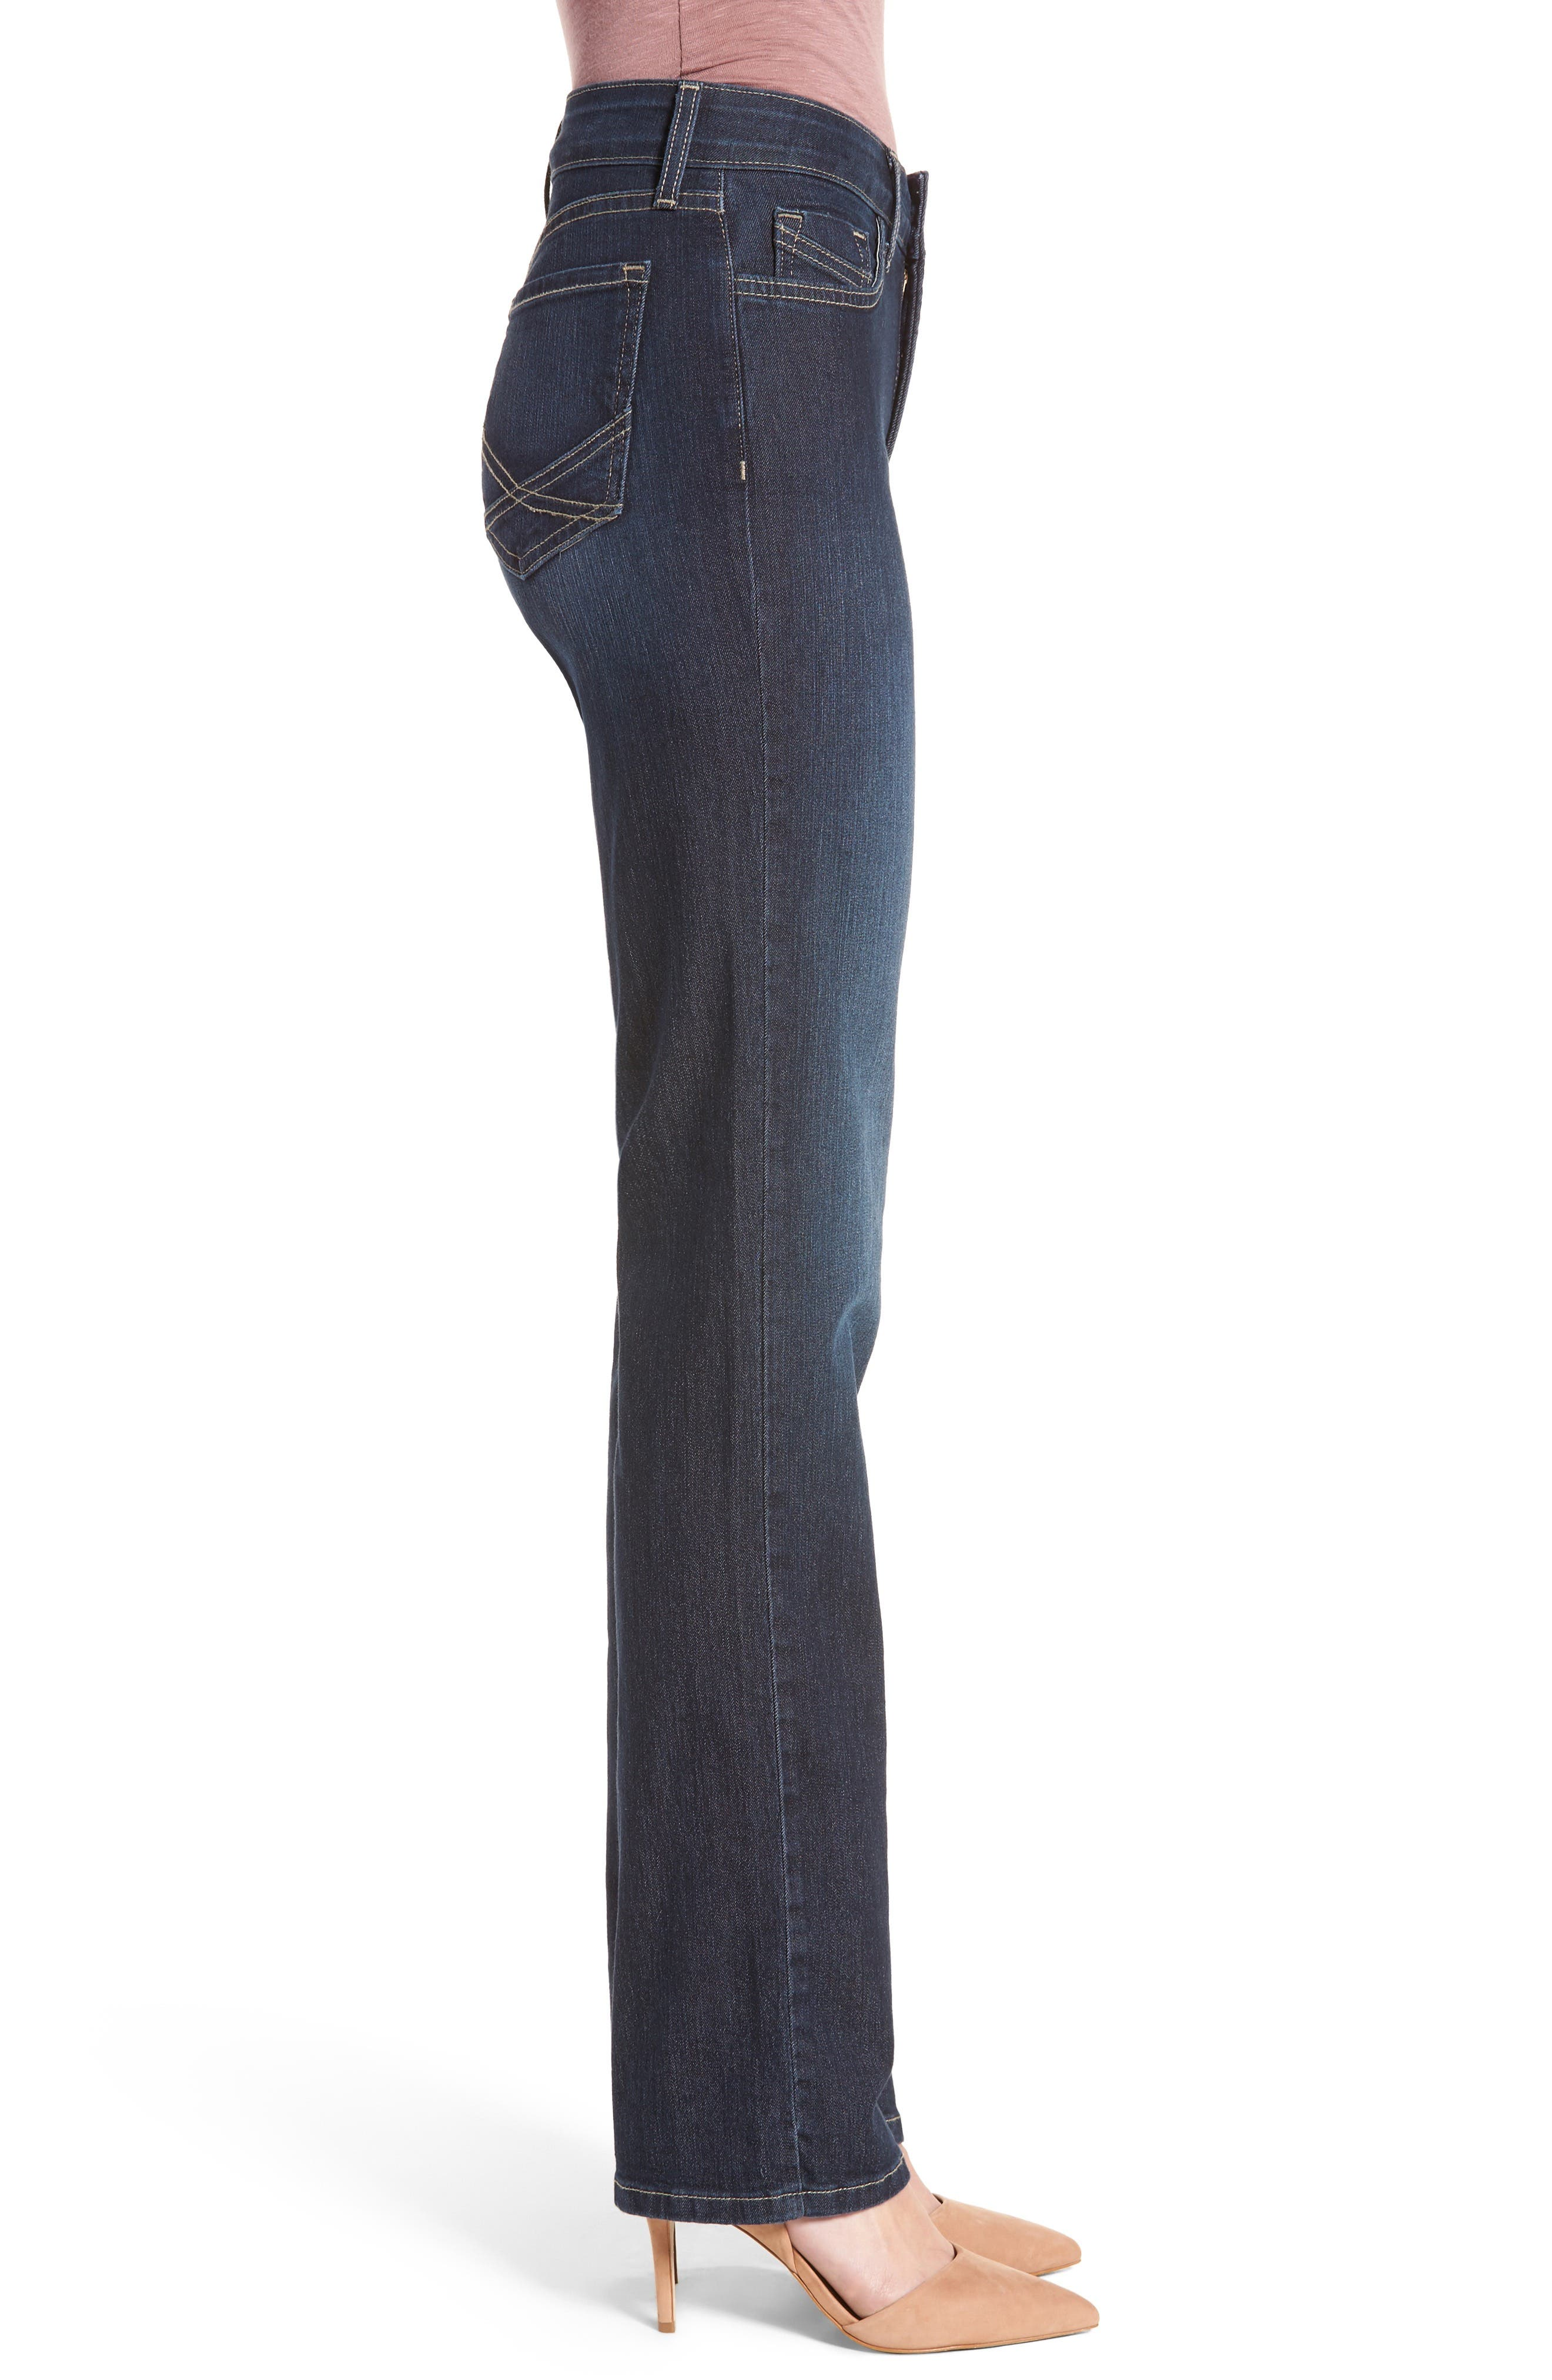 Marilyn Stretch Straight Leg Jeans,                             Alternate thumbnail 3, color,                             Hollywood Wash